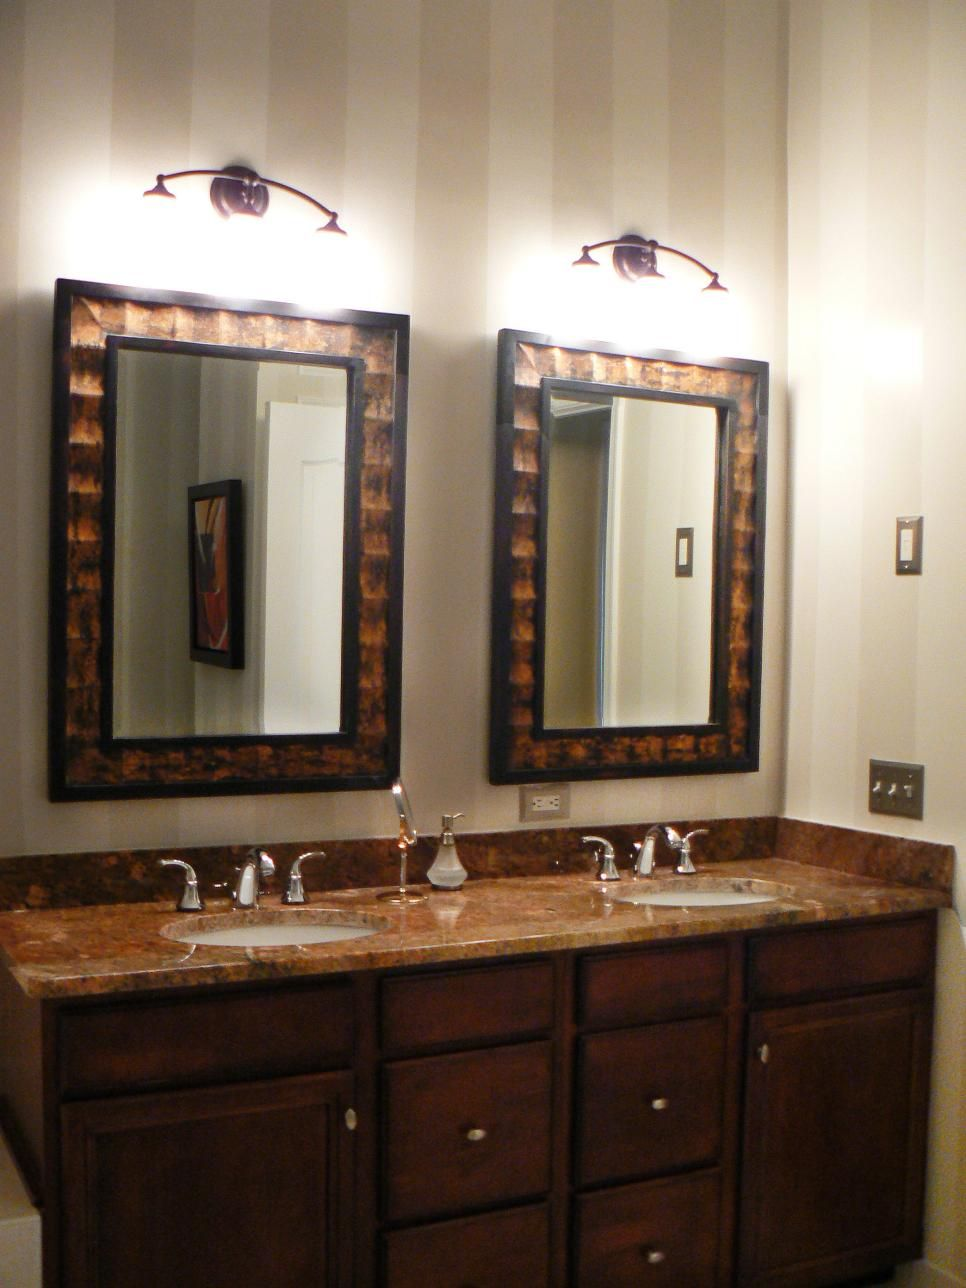 Beautiful Bathroom Mirrors Pinterest Vertical Striped Walls Bronze Mirror And Neutral Tones